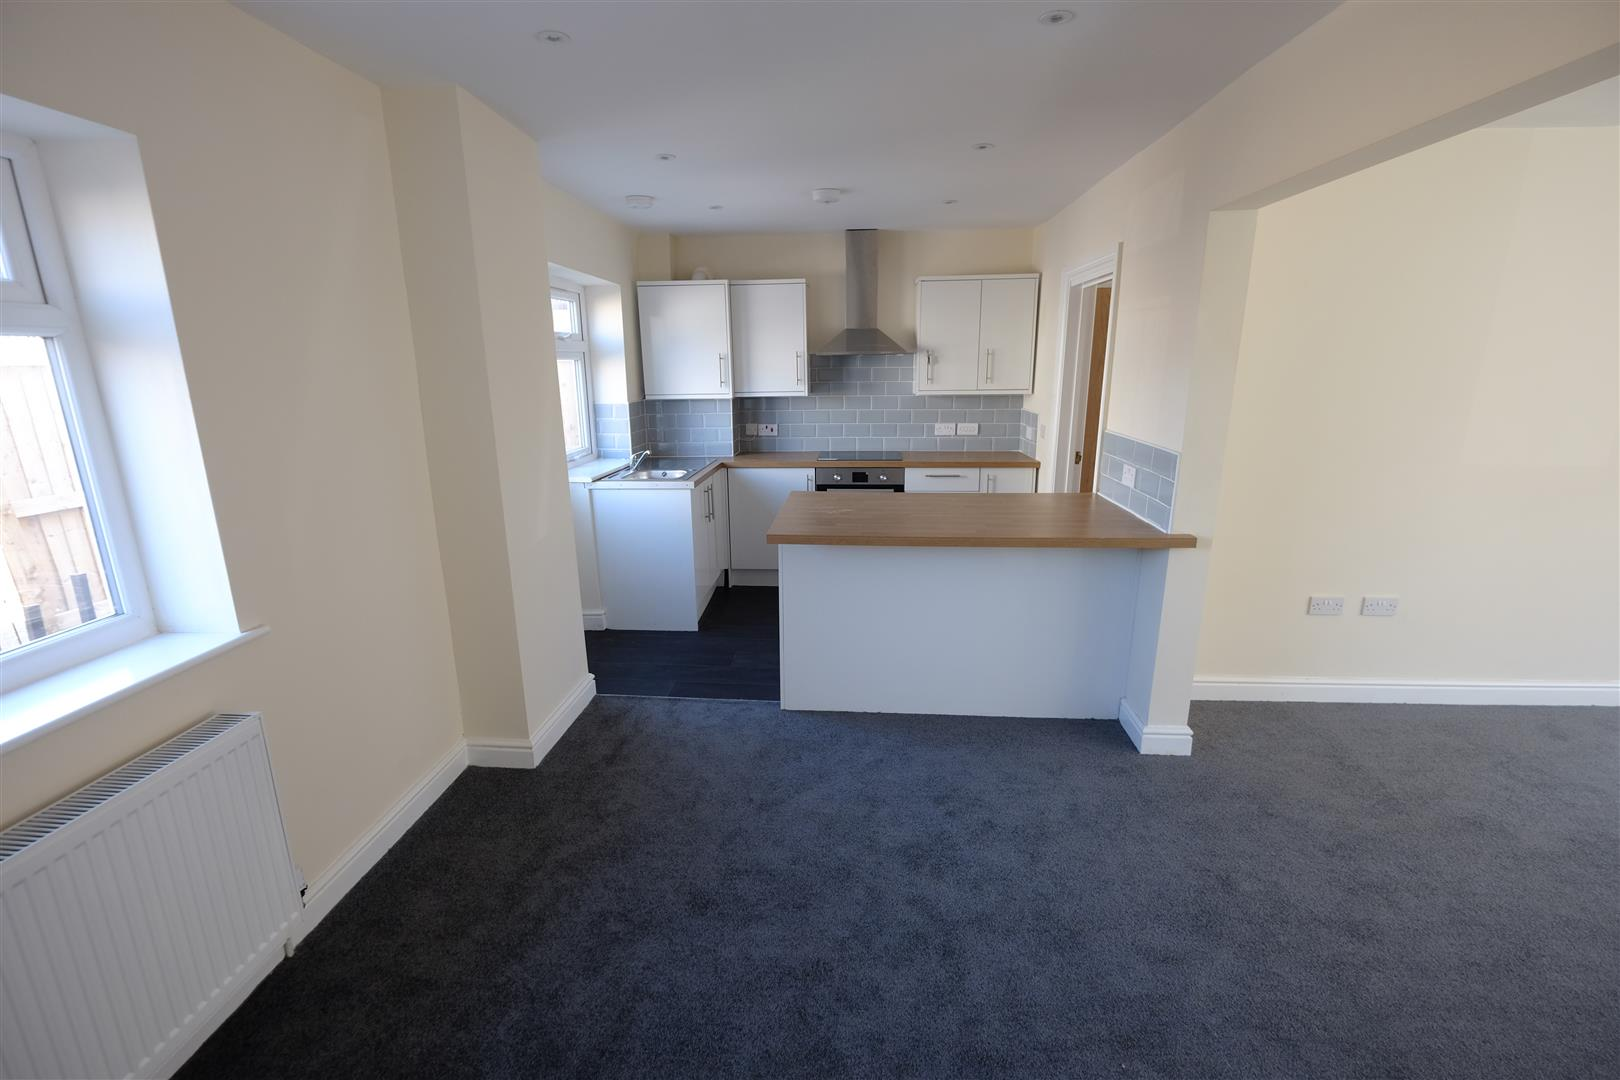 Images for CASH BUYERS ONLY - NEW BUILD HOUSE EAID:hollismoapi BID:11